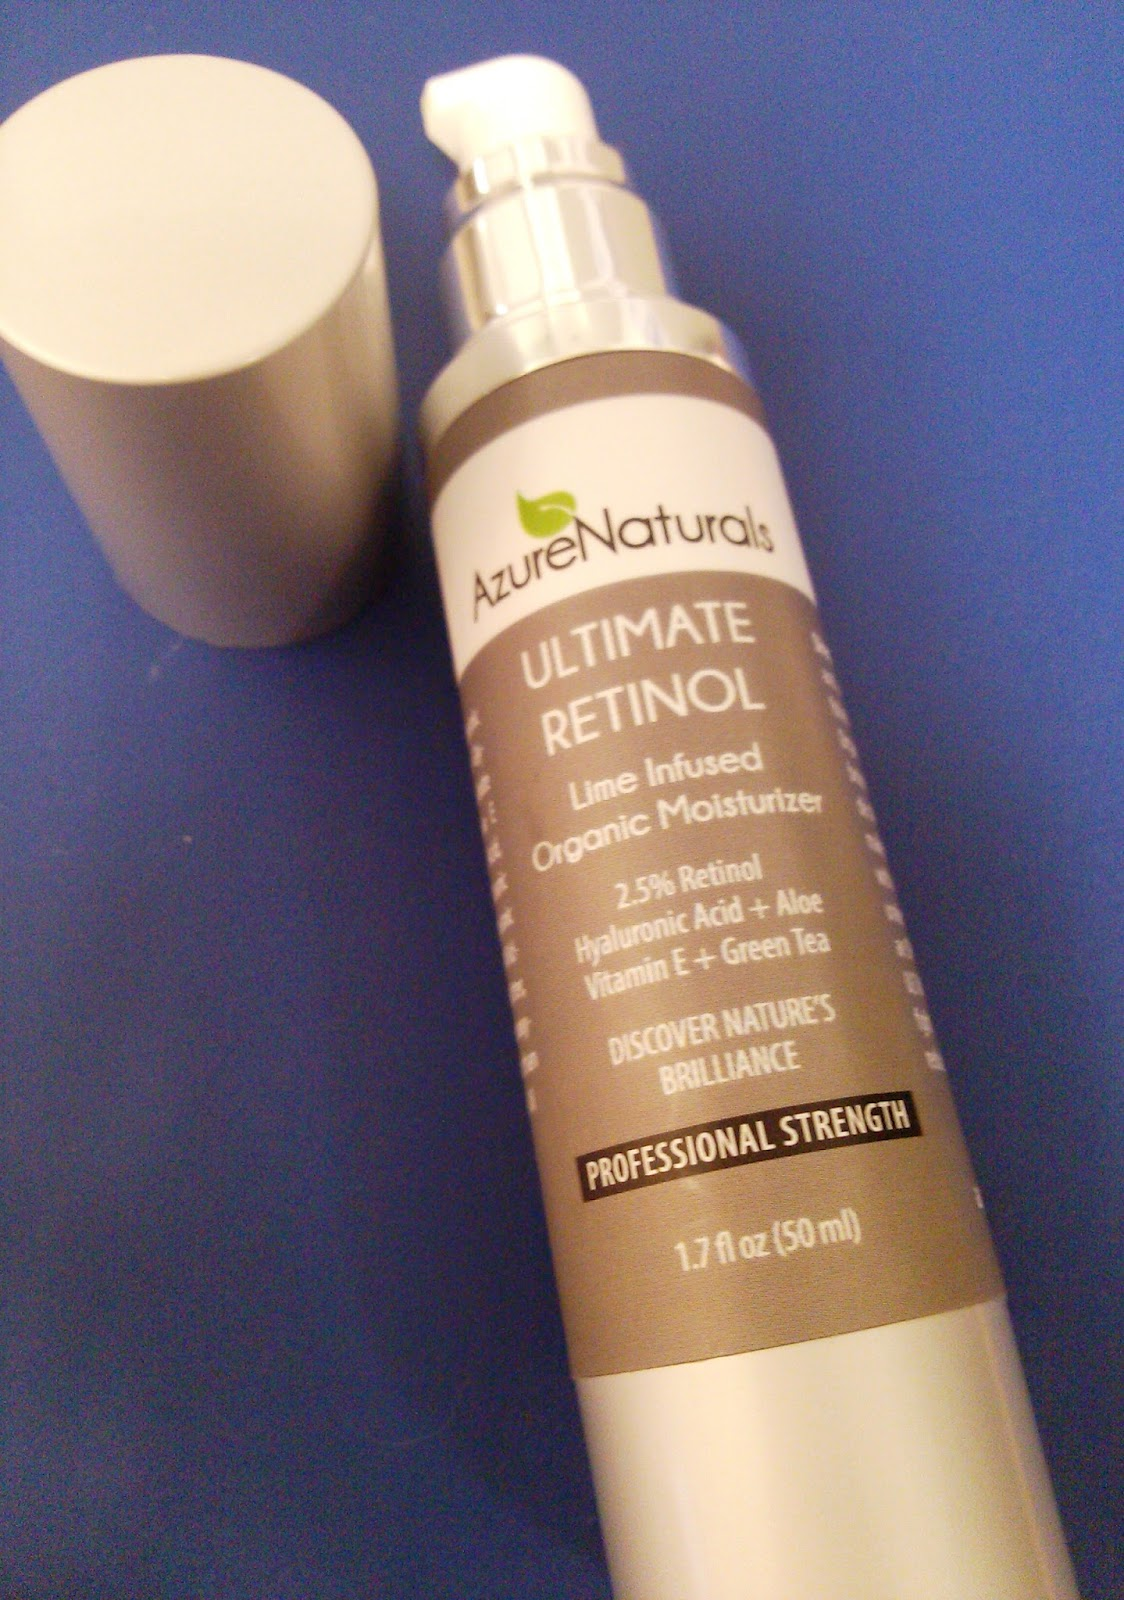 Ultimate Retinol Lime-Infused Organic Moisturizer Review